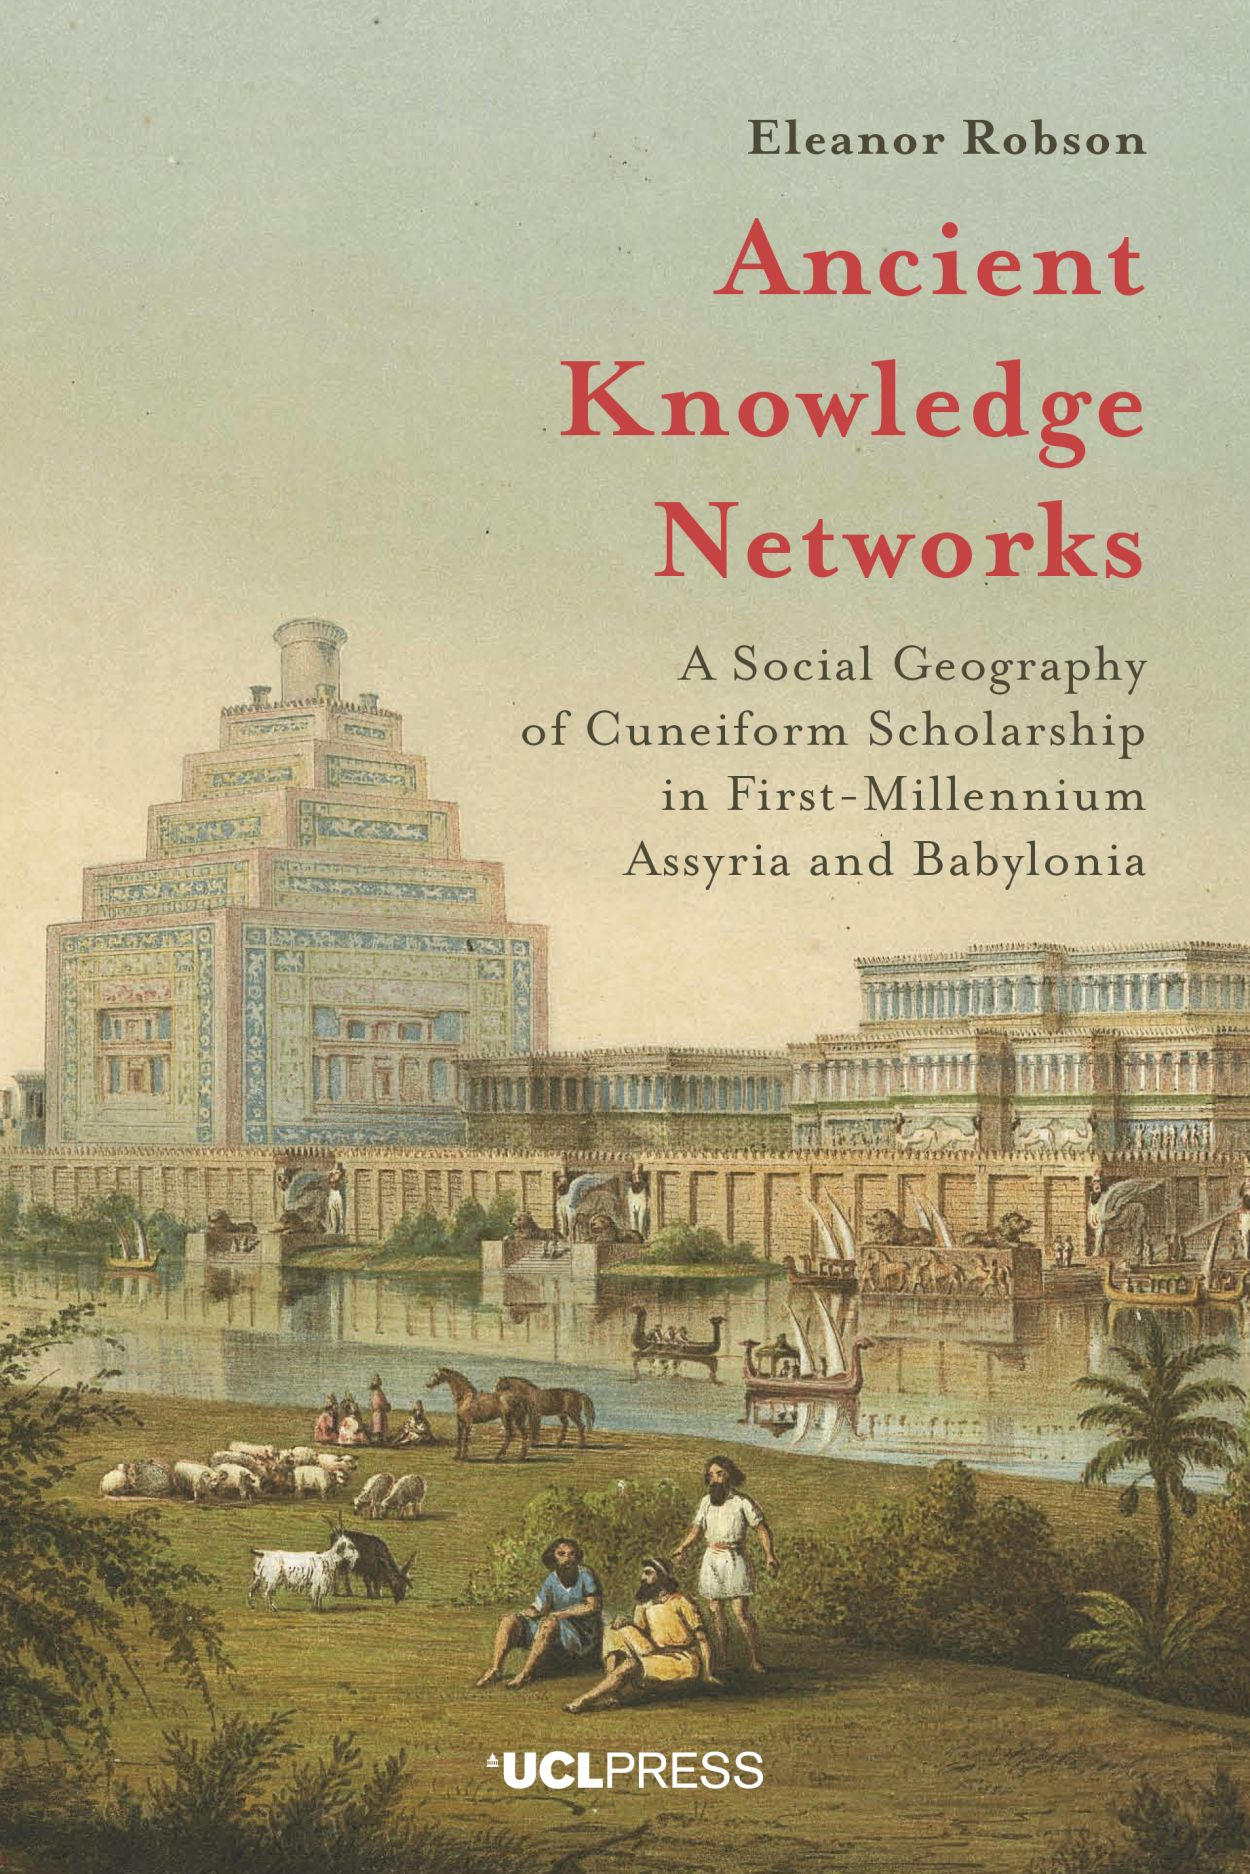 Ancient Knowledge Networks: A Social Geography of Cuneiform Scholarship in First-Millennium Assyria and Babylonia